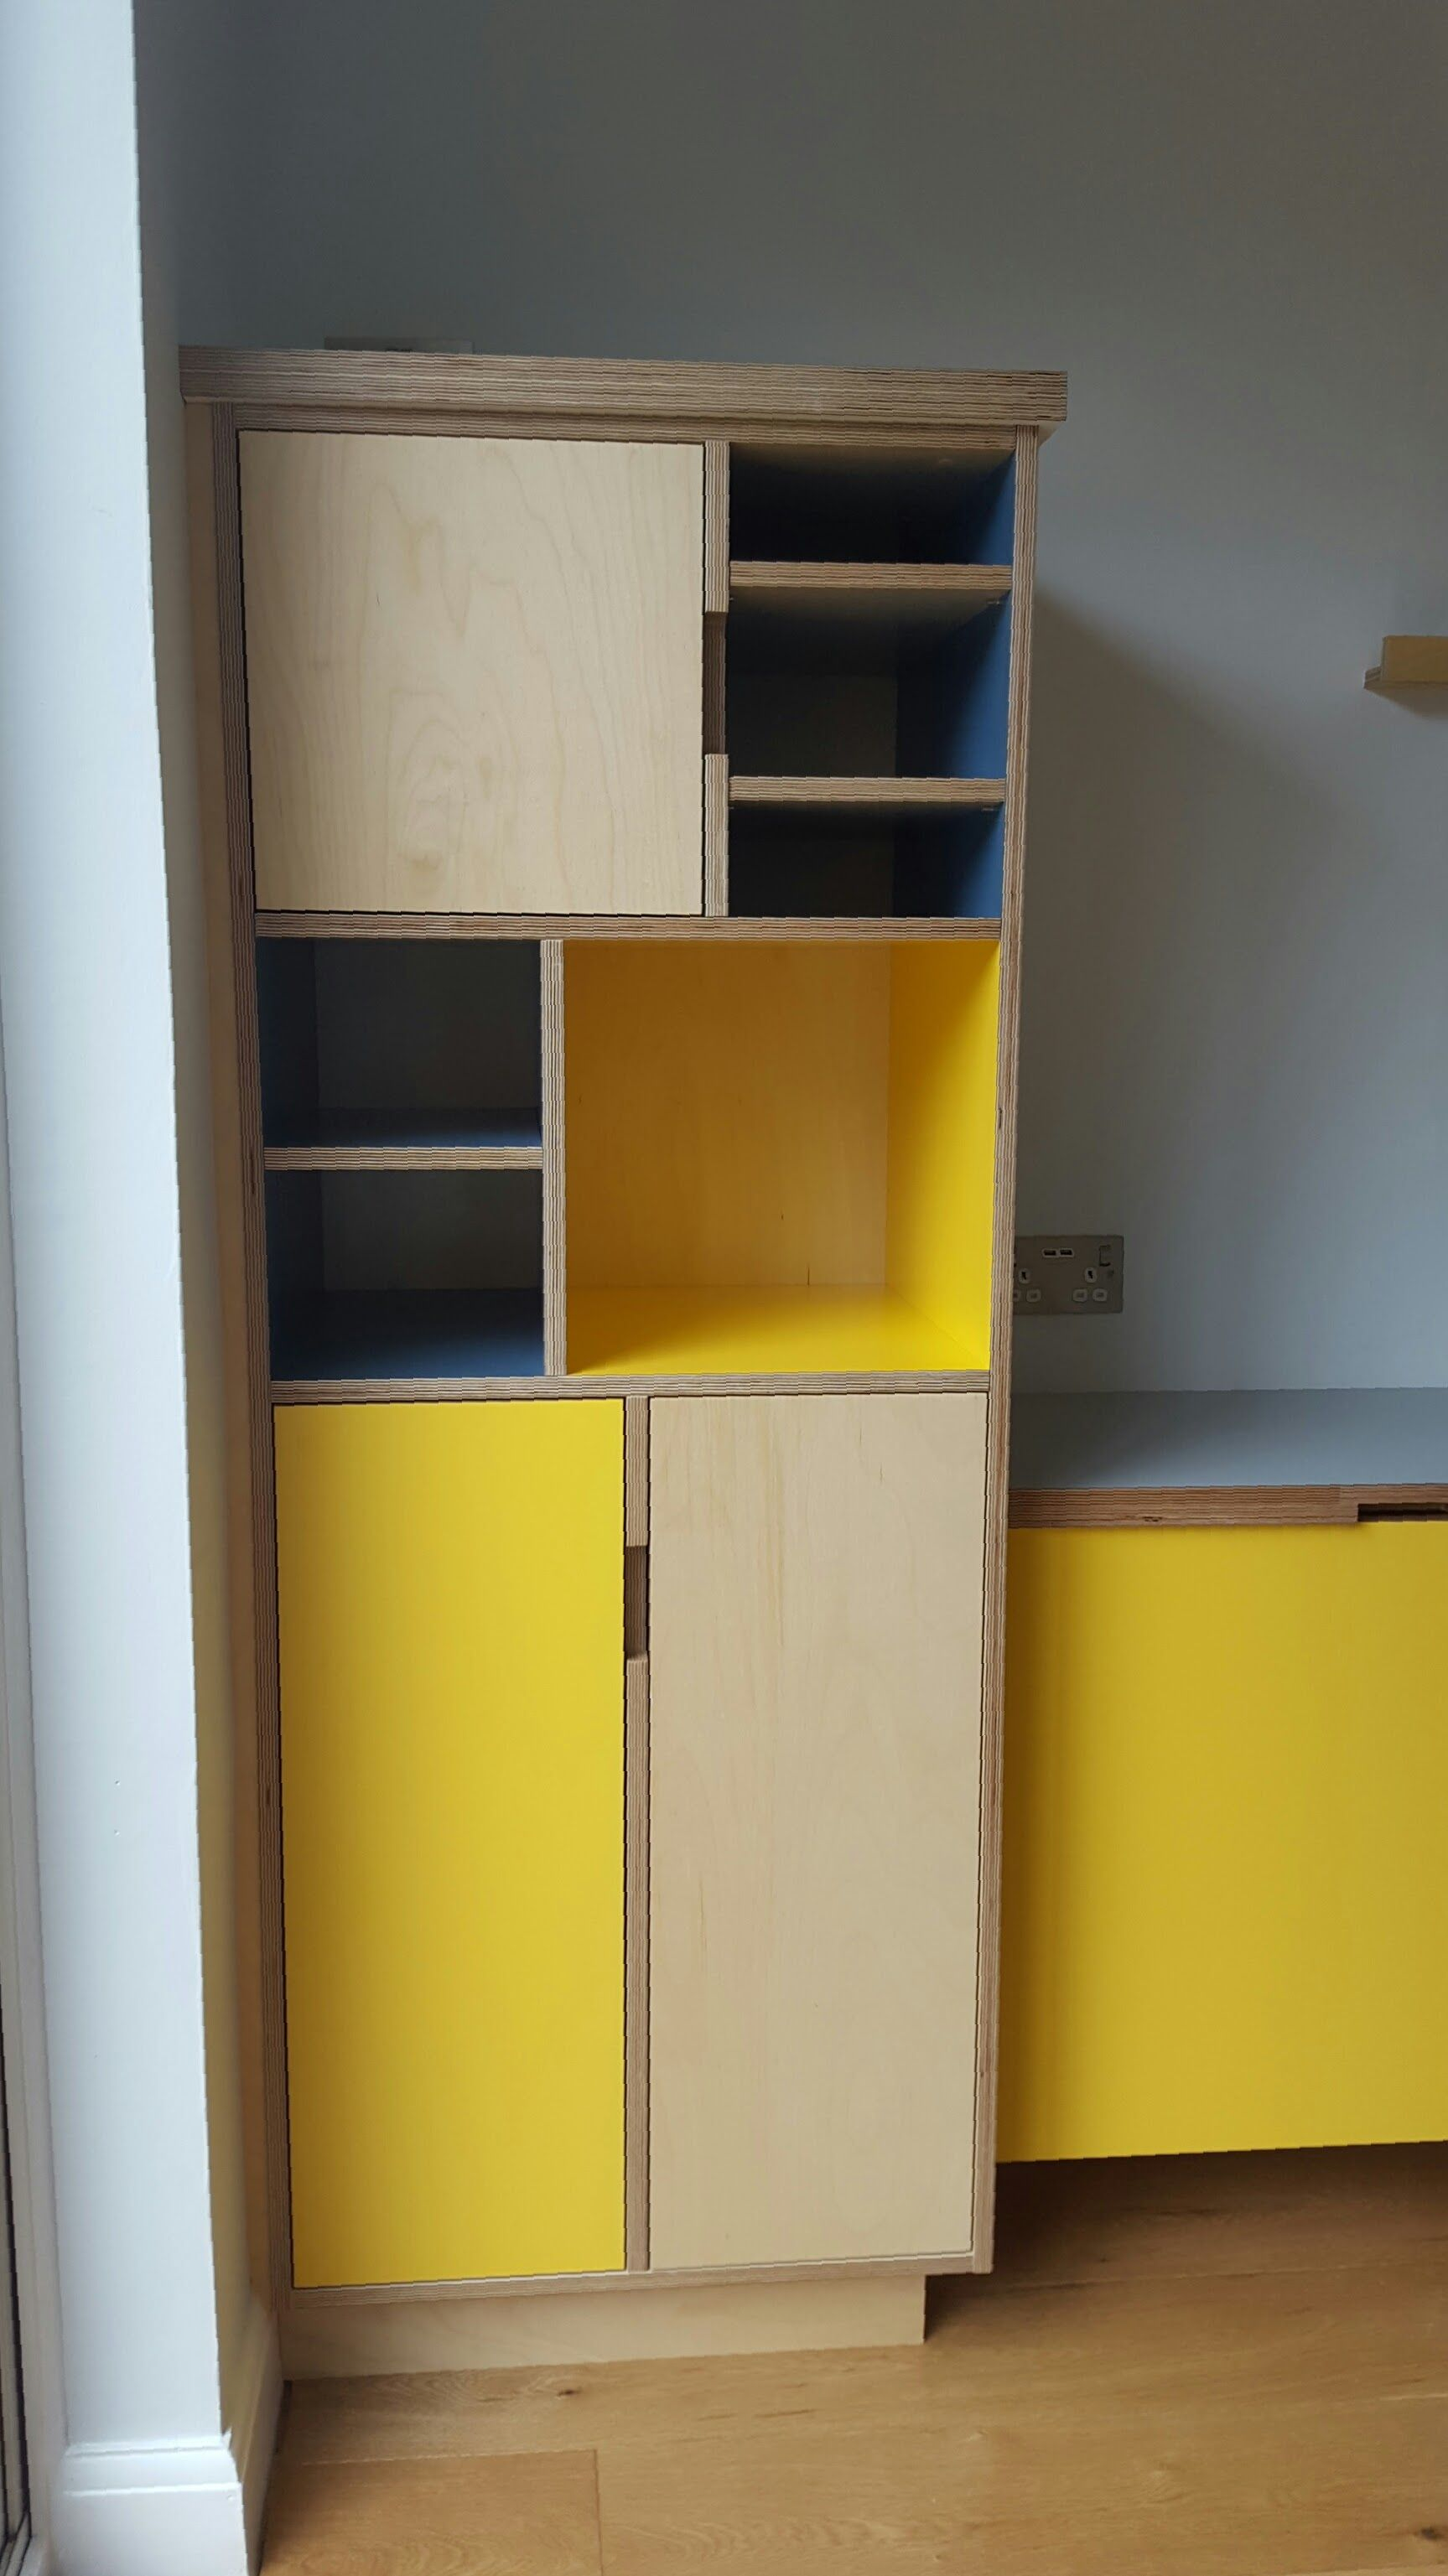 henderson shelves cupboard uk brighton shelf floating alcove pin peter chubby furniture by